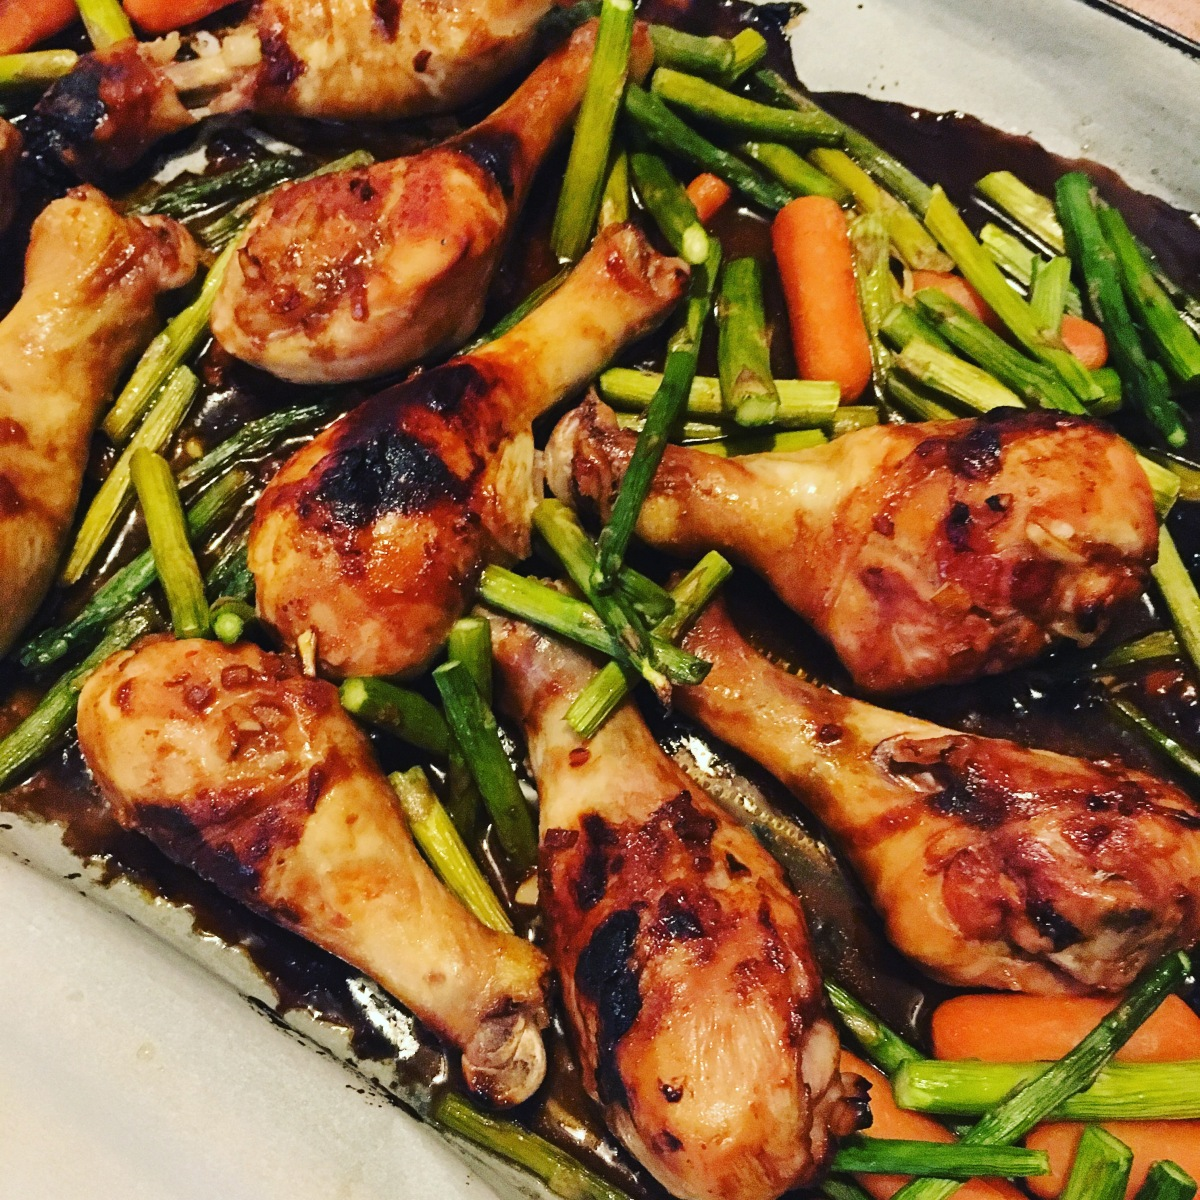 Sheet Pan Terikayi Chicken Dinner - Plus 18 Weeknight Meal Ideas